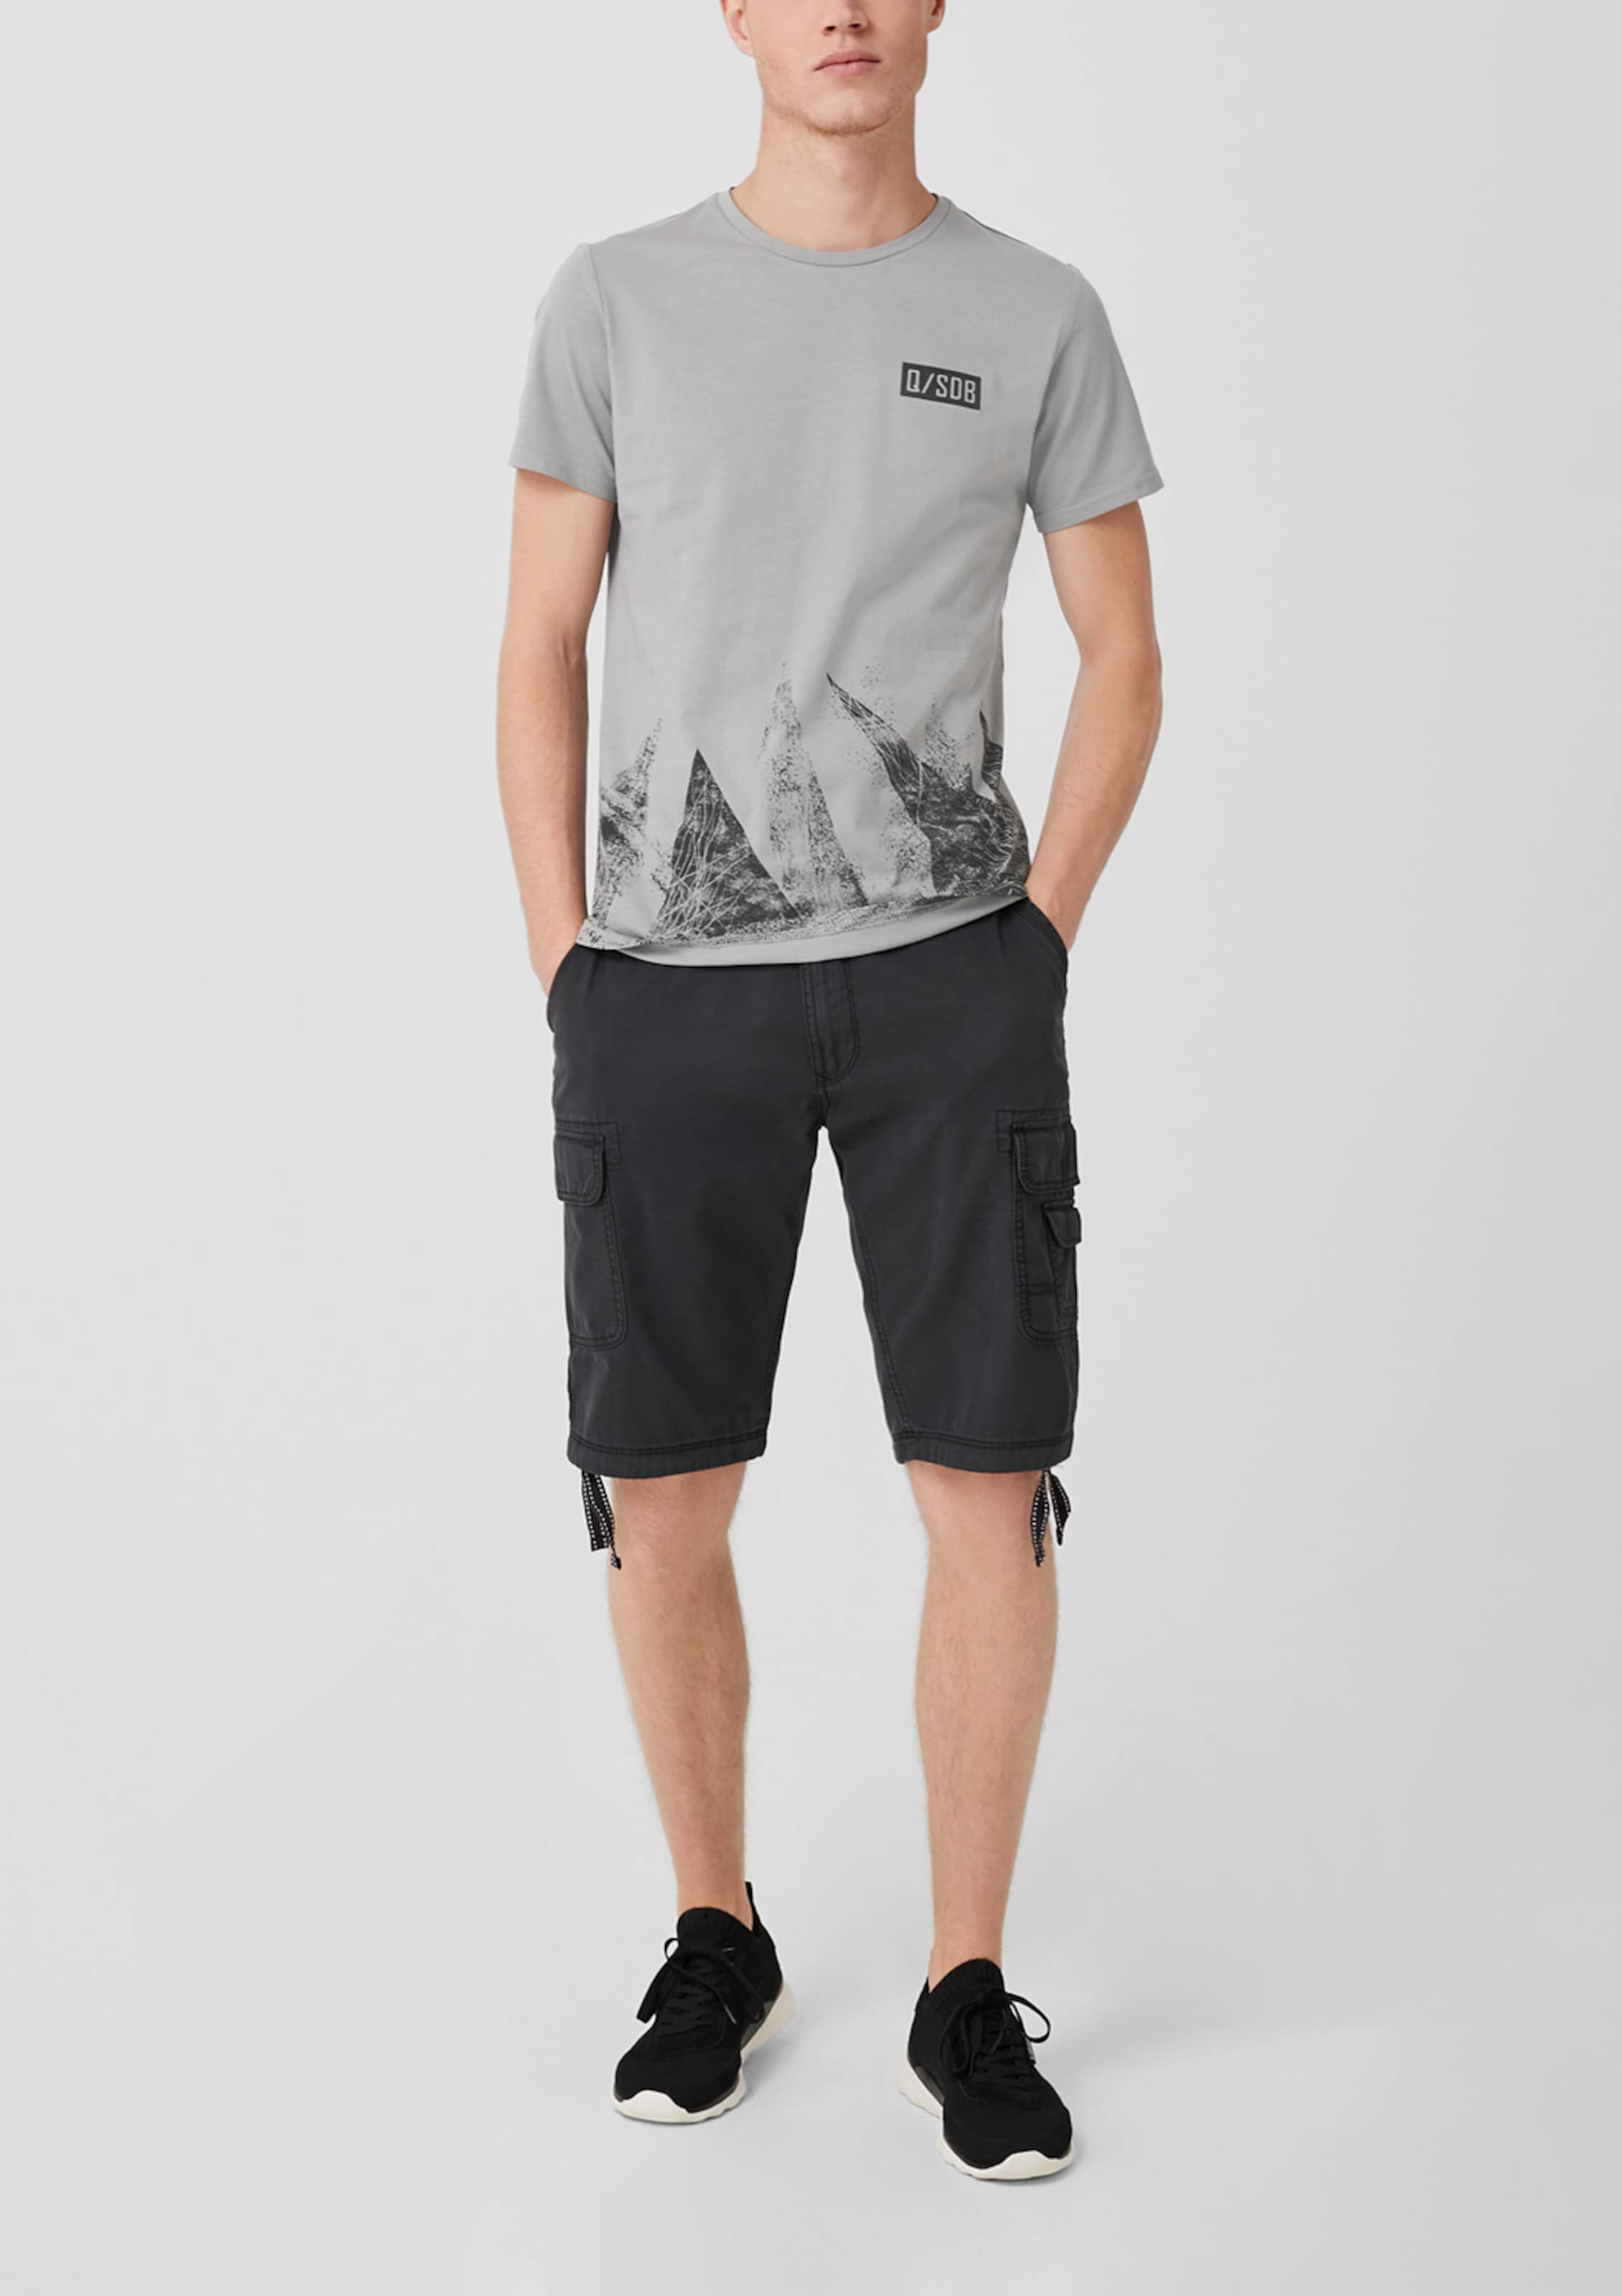 Q Mit Designed T By shirt In Grau Frontprint s vNw08mn